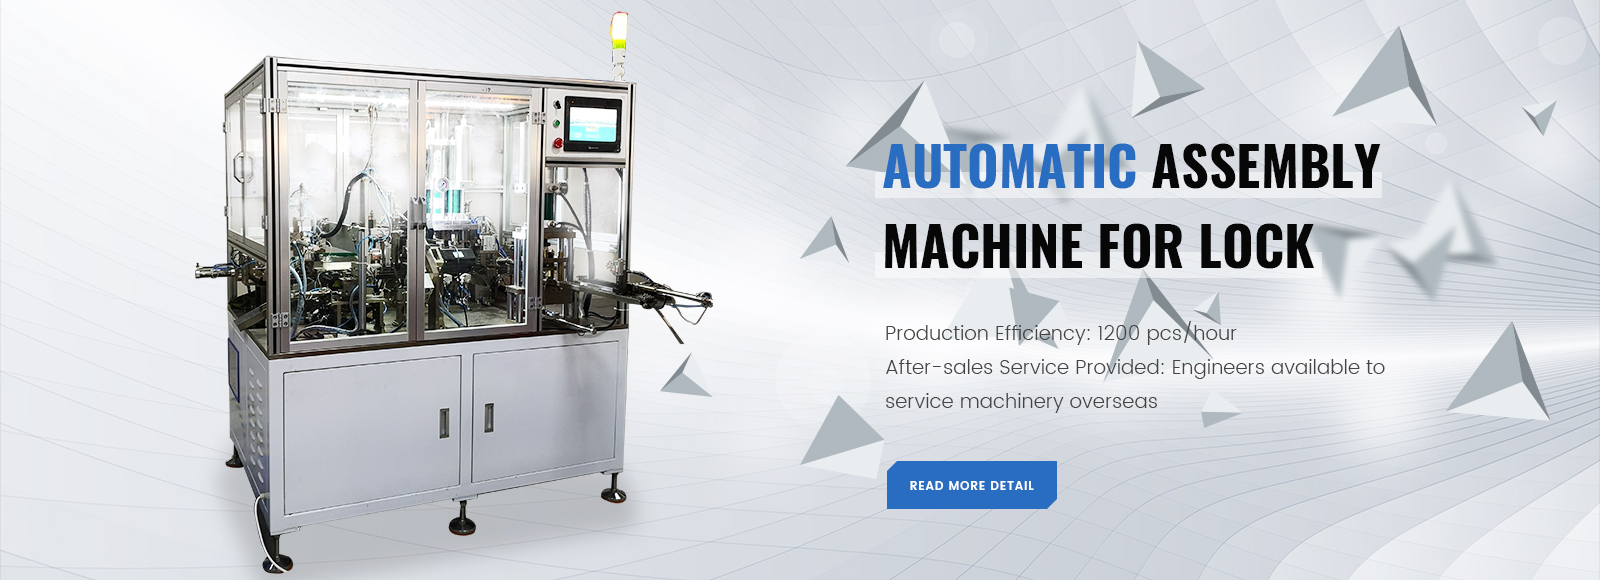 Automatic Assembly Machine For Lock